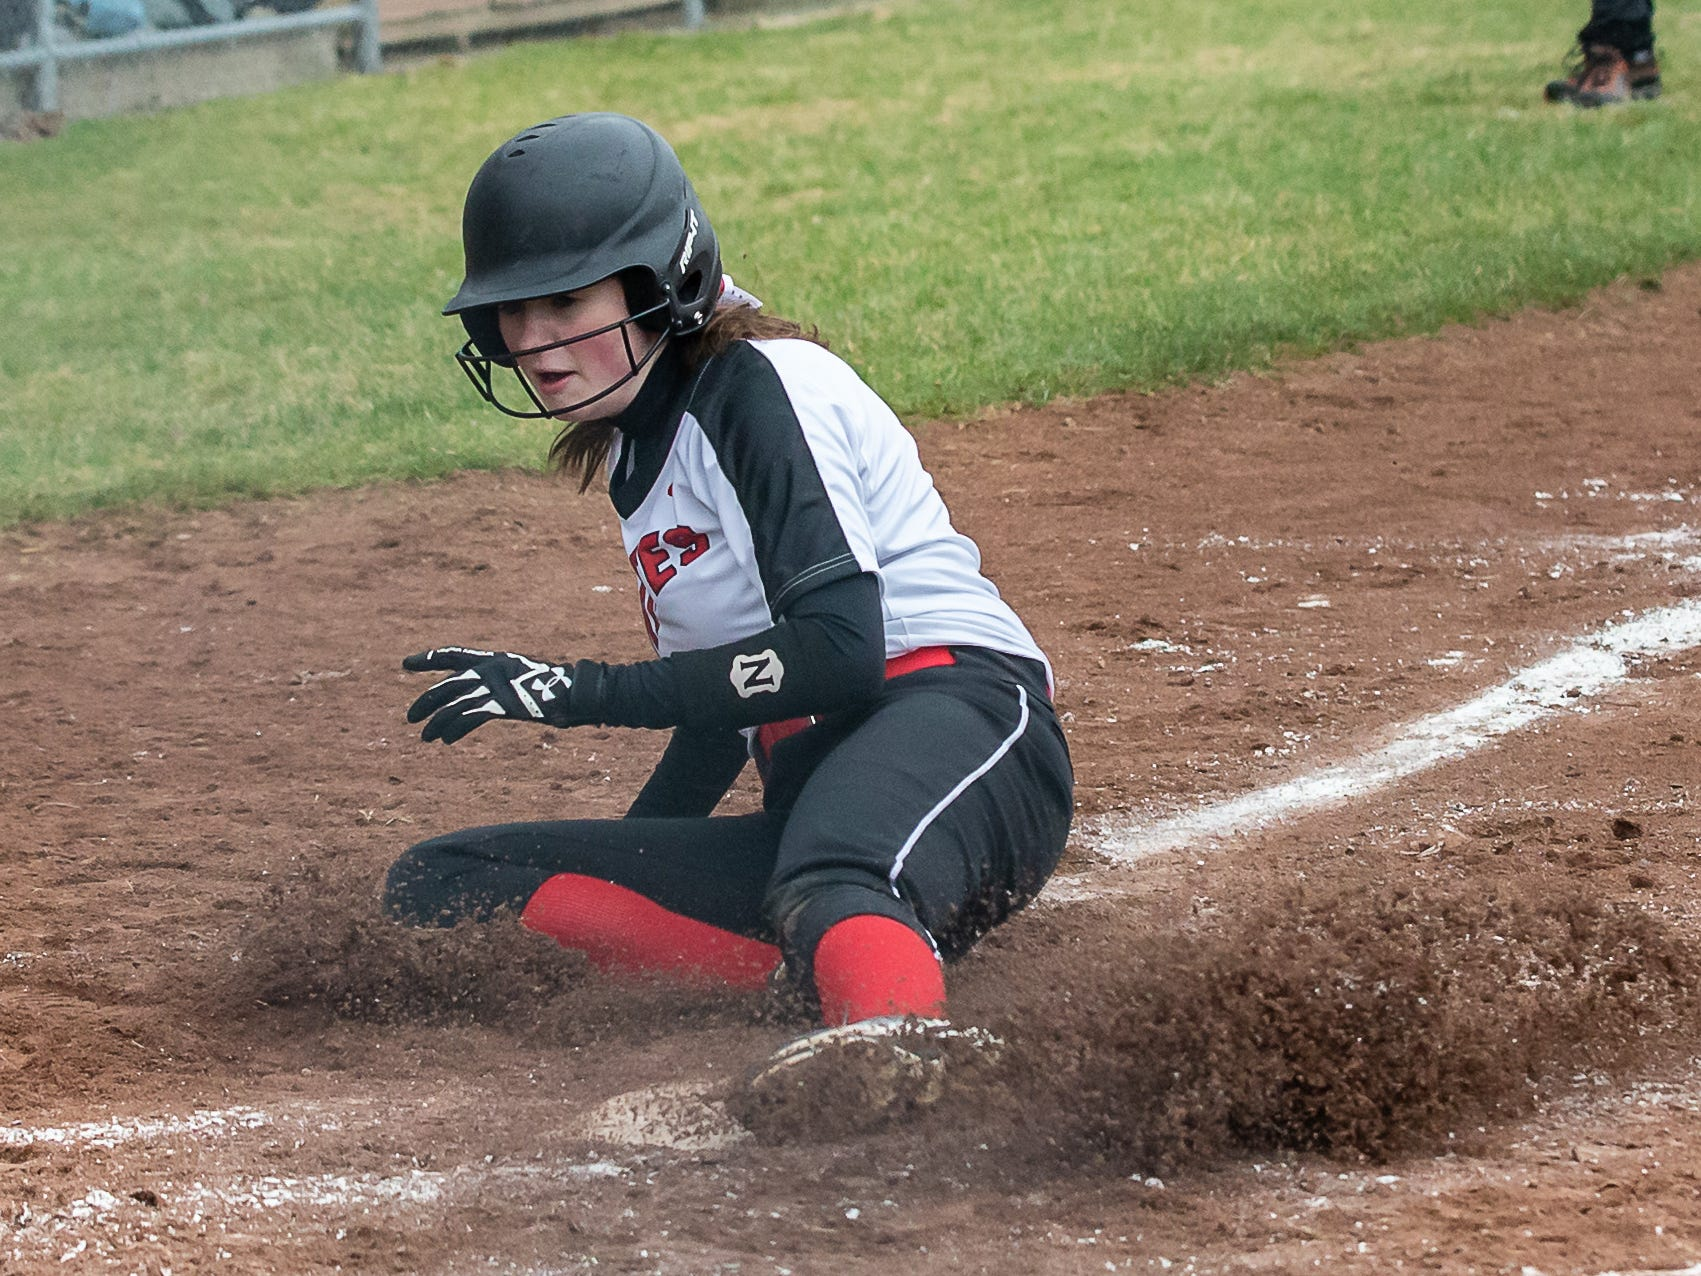 Pewaukee's Jenna Brandl (15) slides in safe during the game at home against Cudahy on Thursday, April 18, 2019.